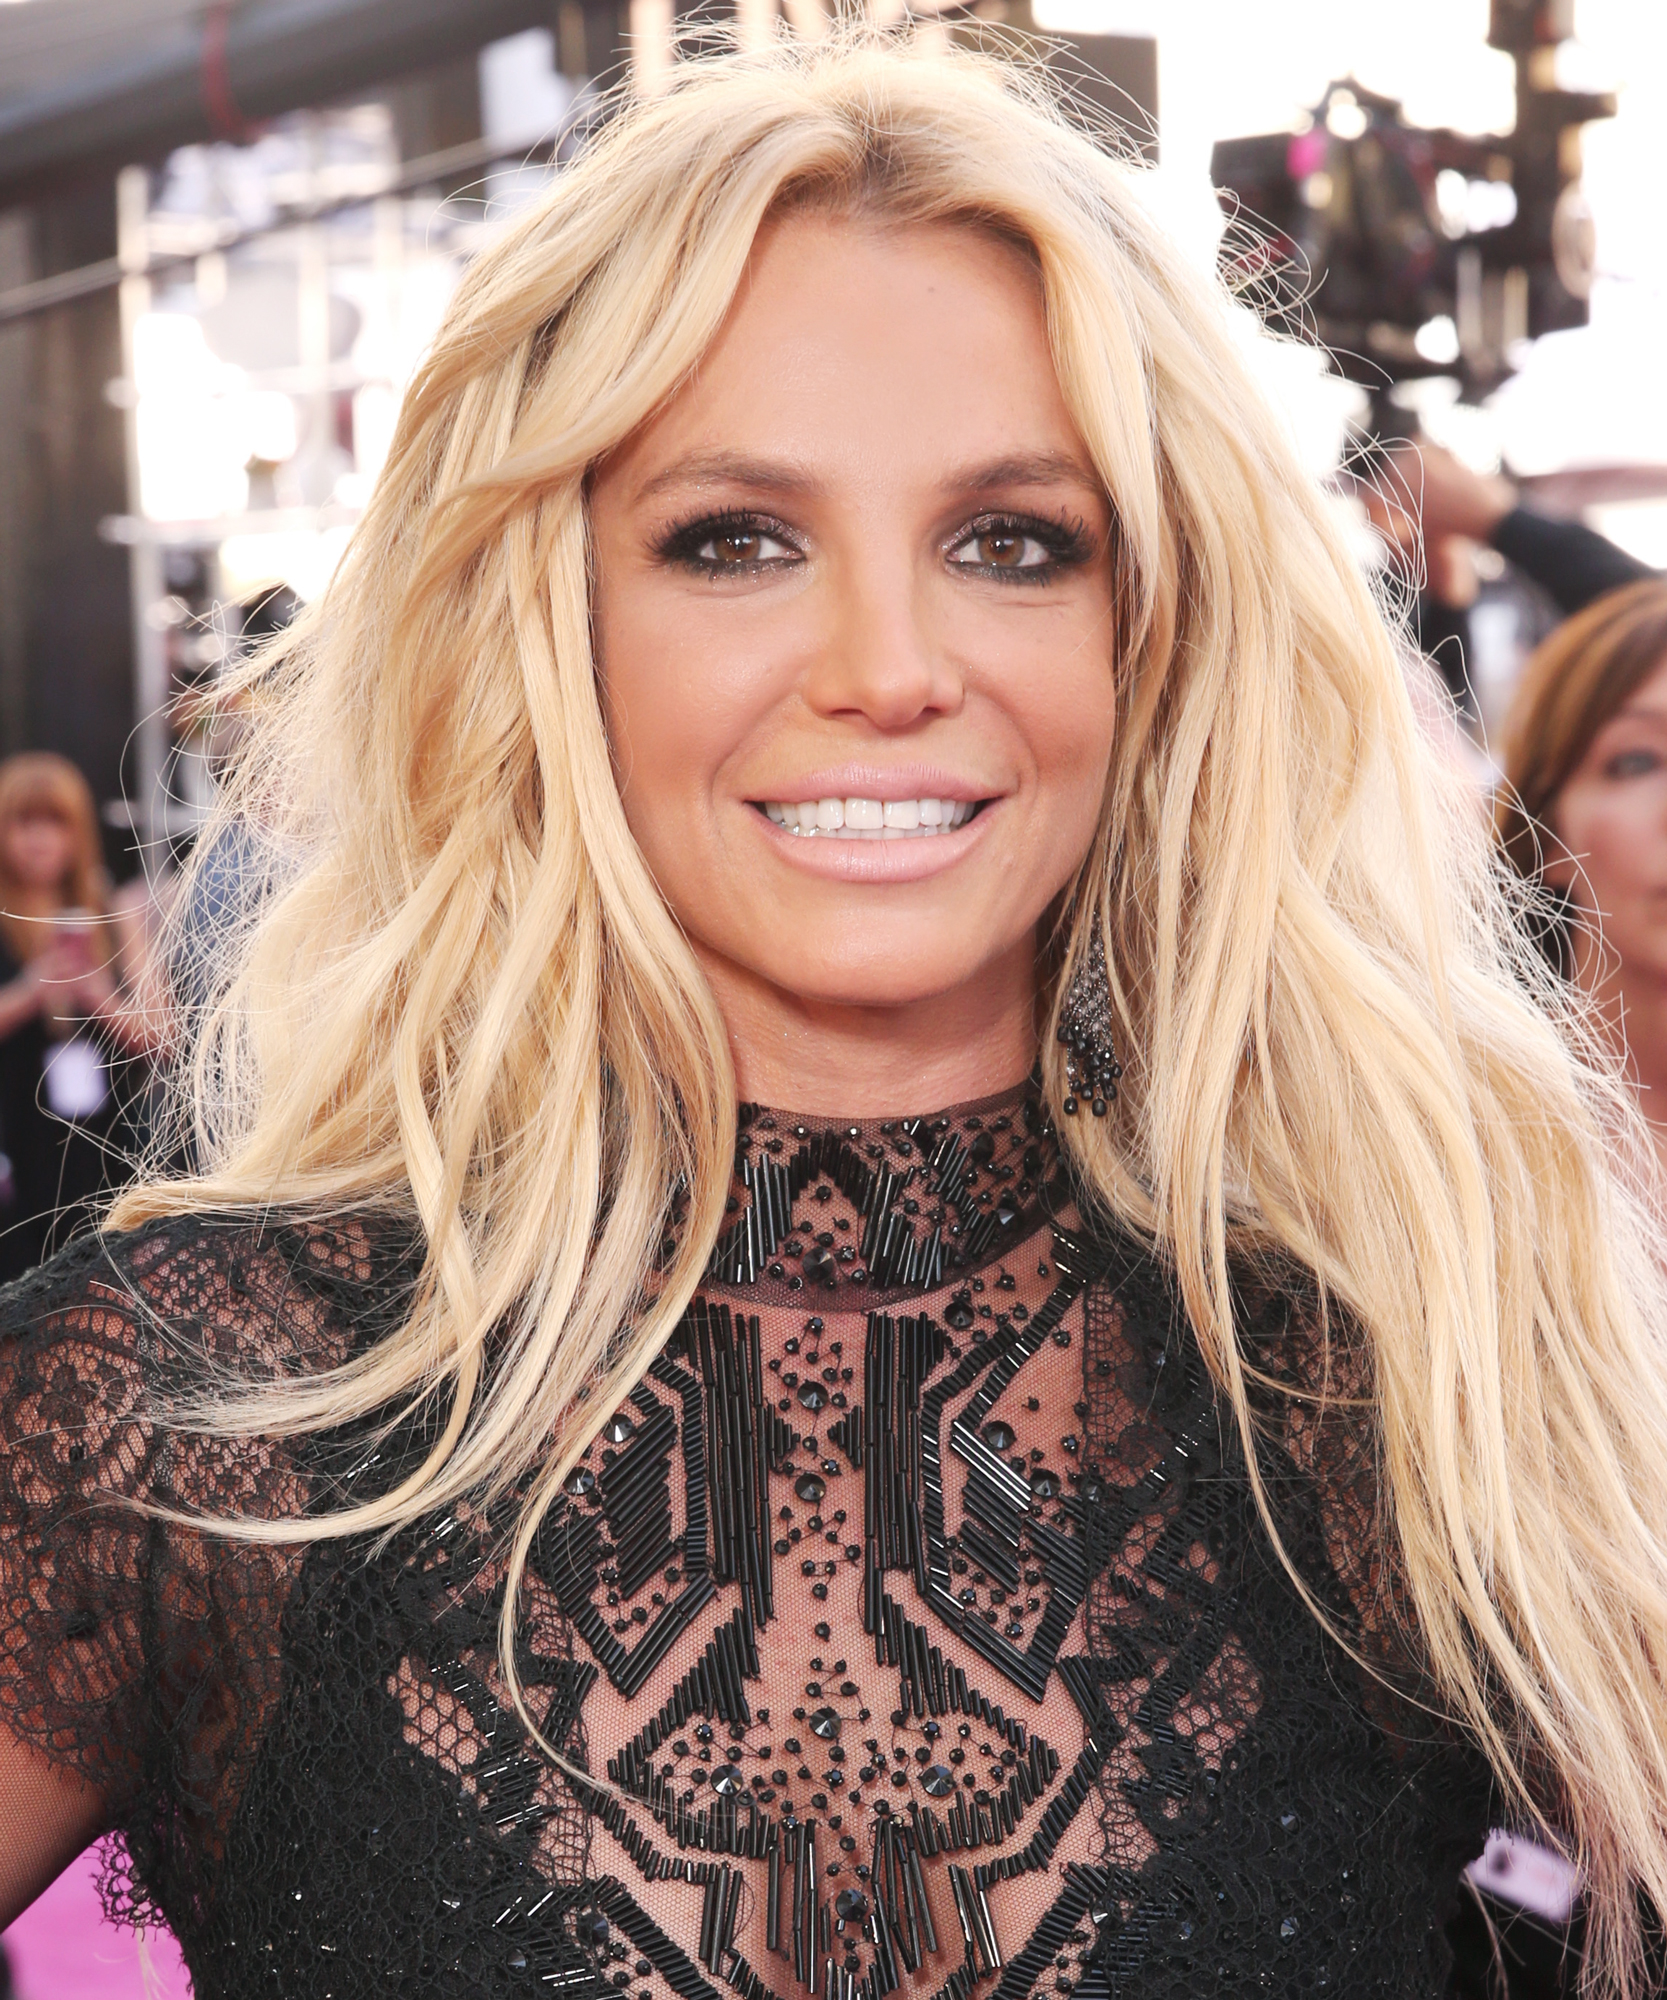 """Britney Spears's Son Draws an Impressive Anime-Style Portrait of Mom, Makes Her """"Very Proud"""""""